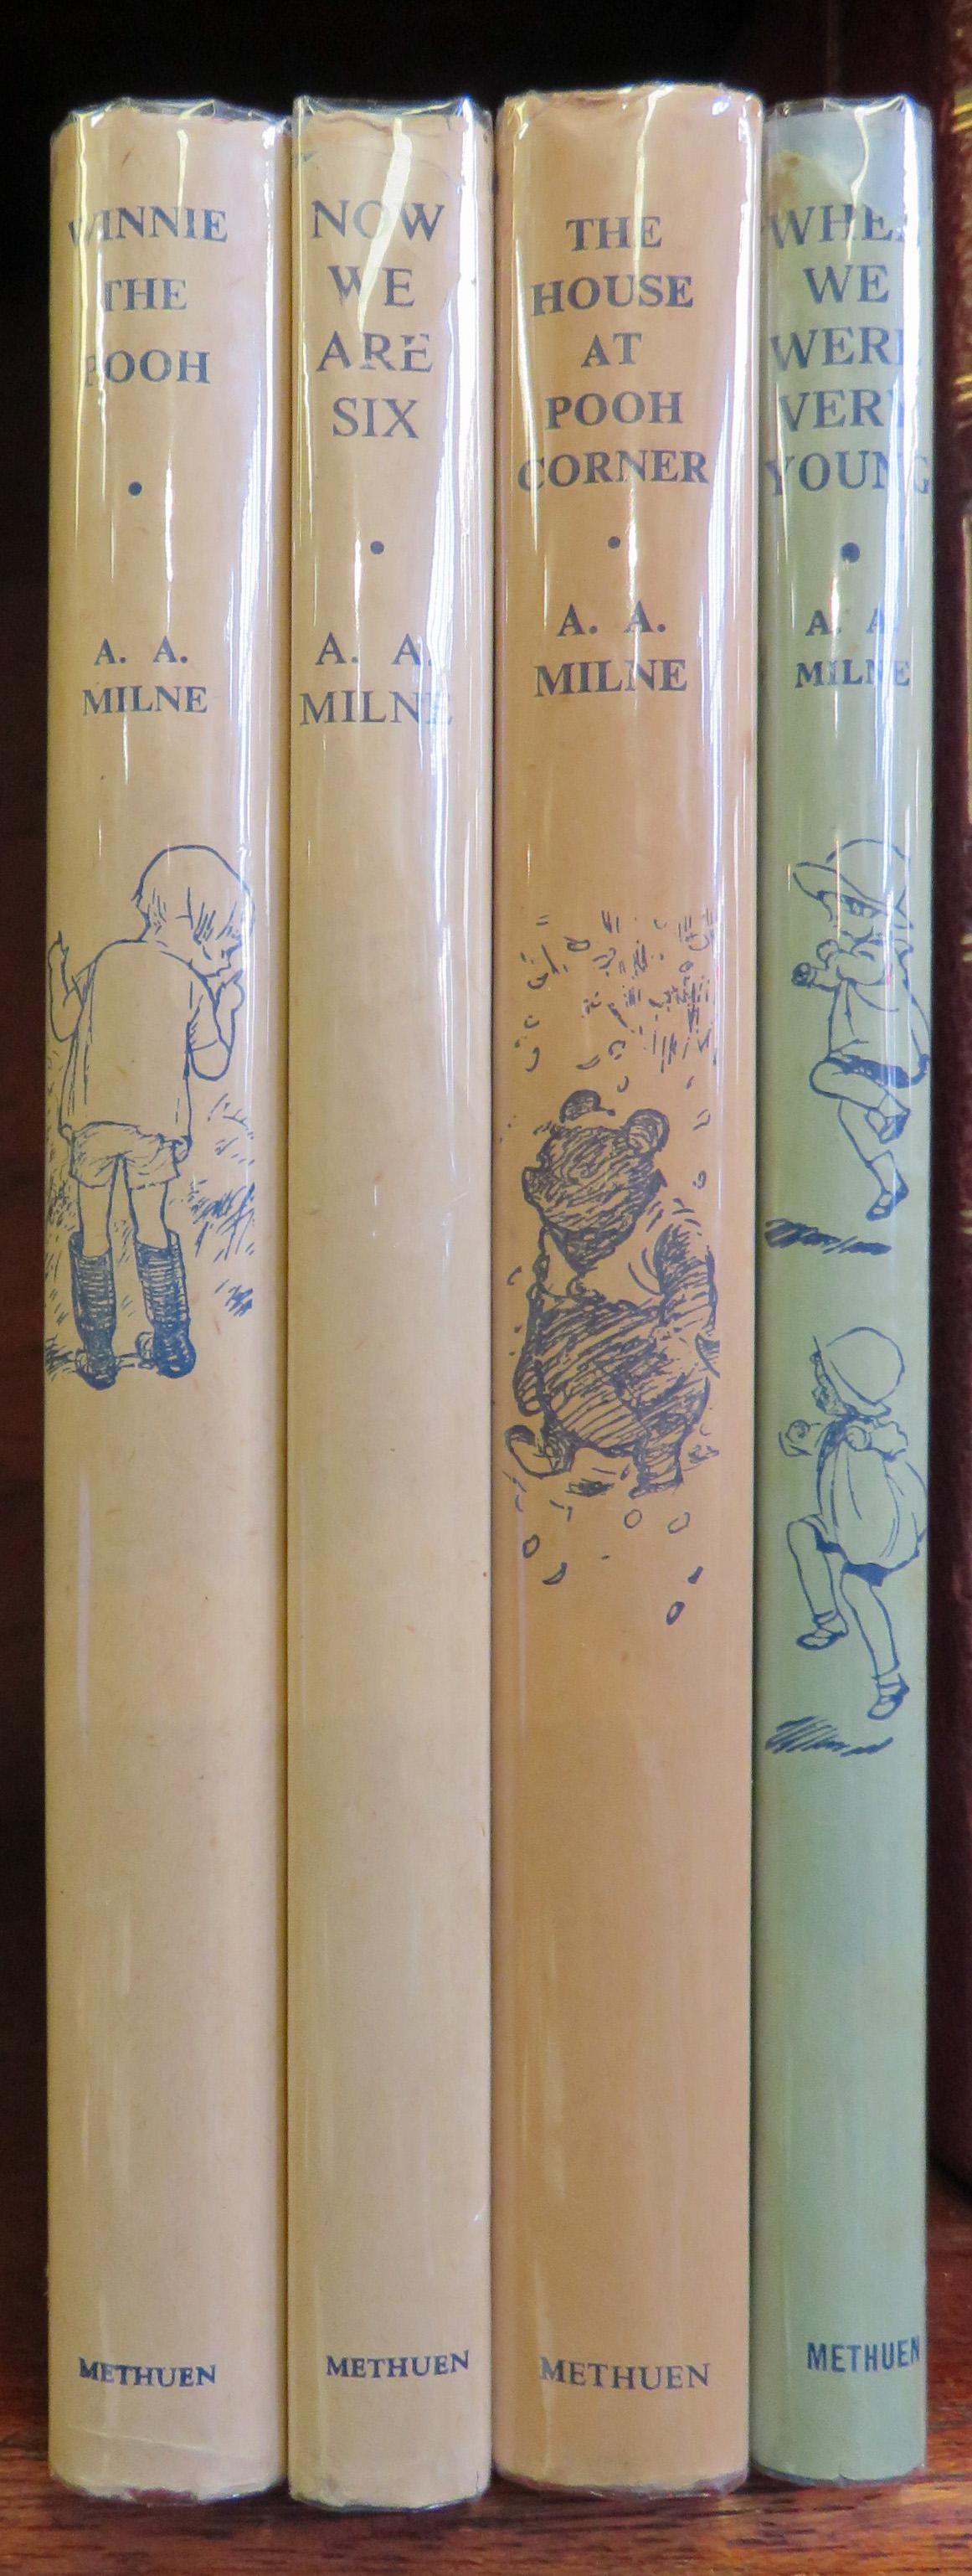 Early Set of A. A. Milnes Signed by Illustrator Ernest Shepard